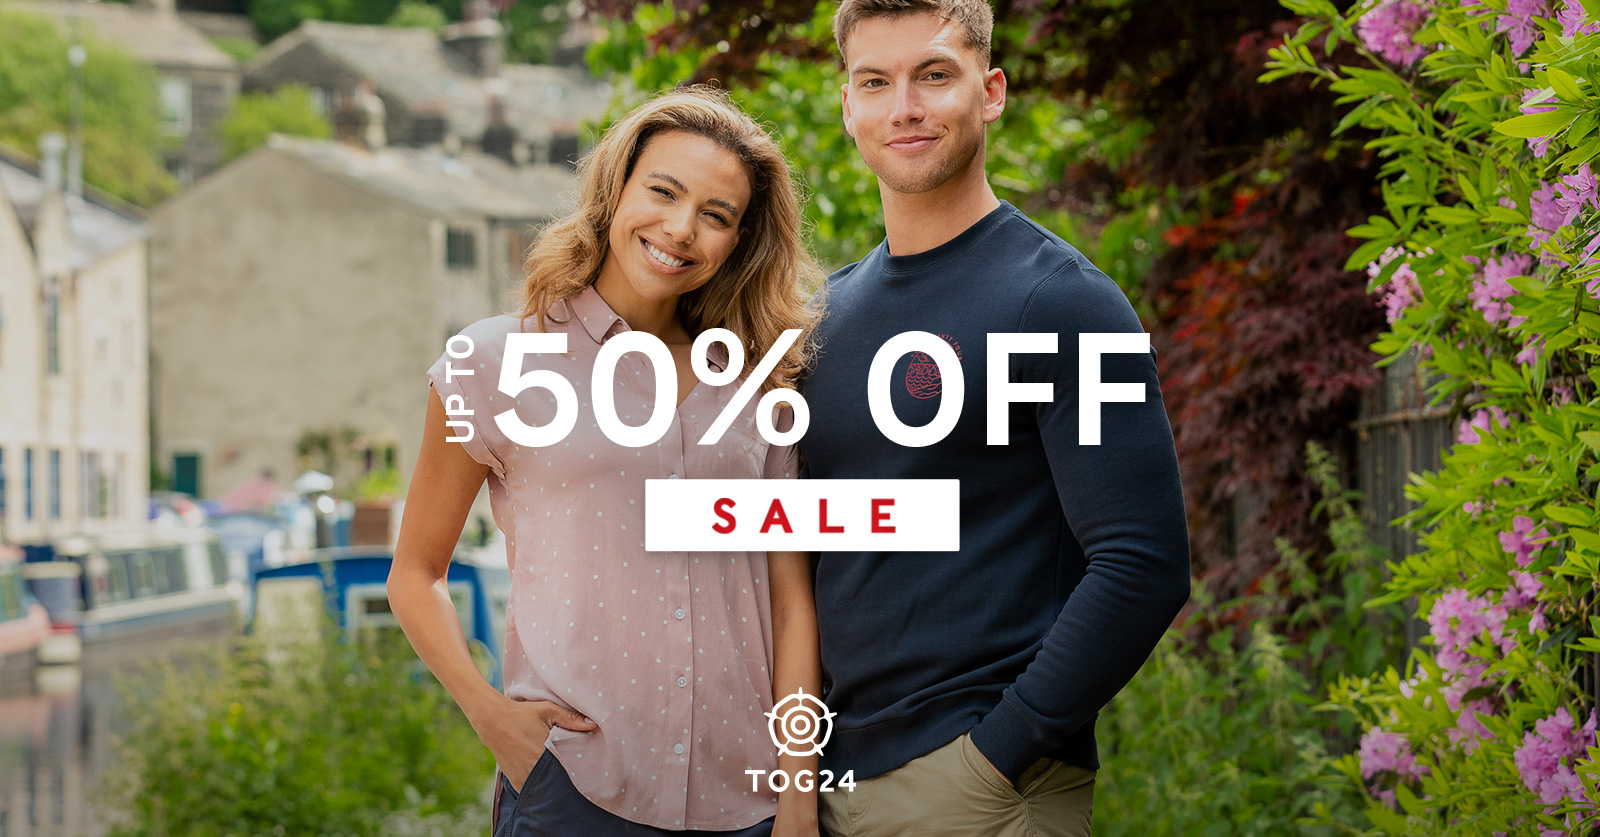 Up to 50% off on all outdoor clothing